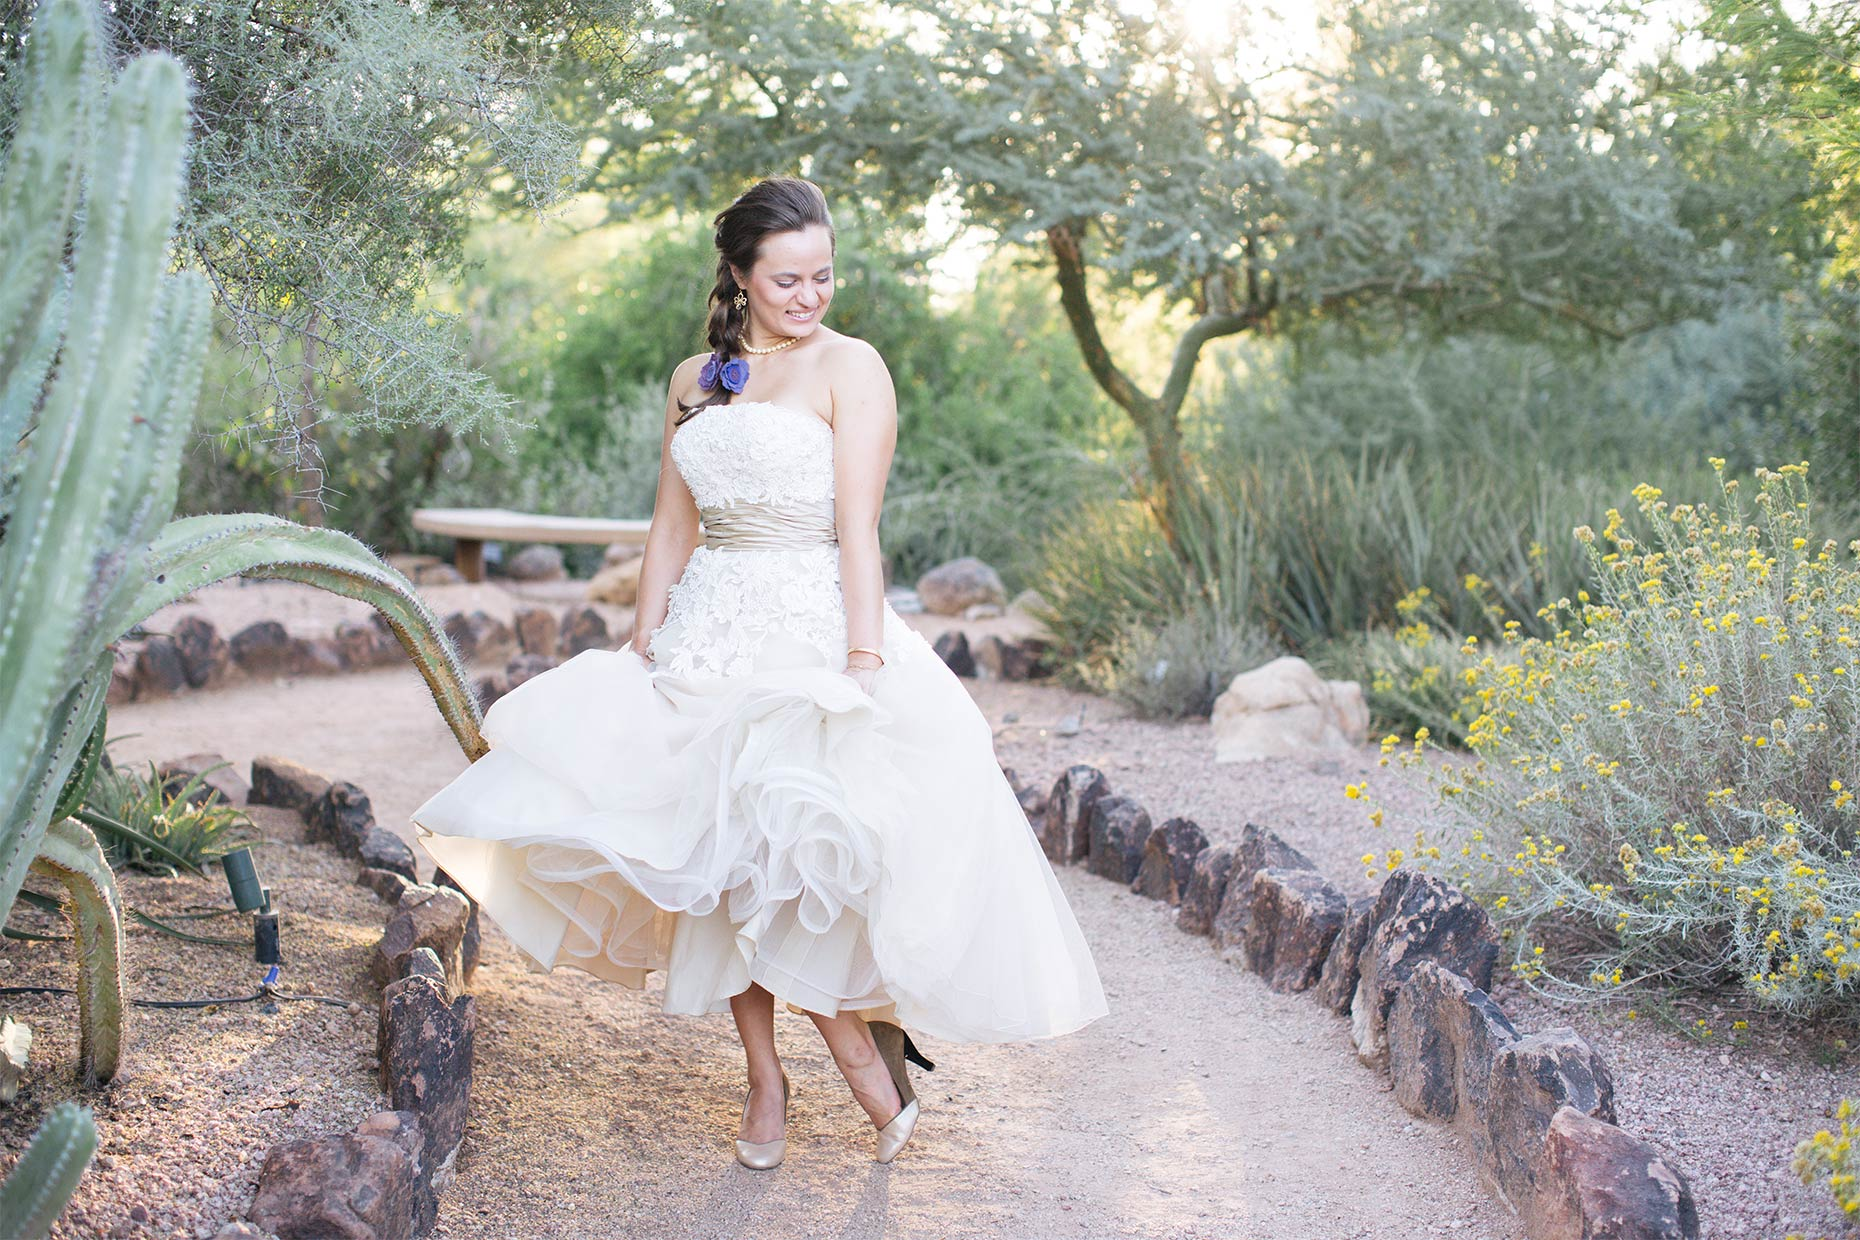 destination wedding Pheonix AZ omaha wedding photographer023